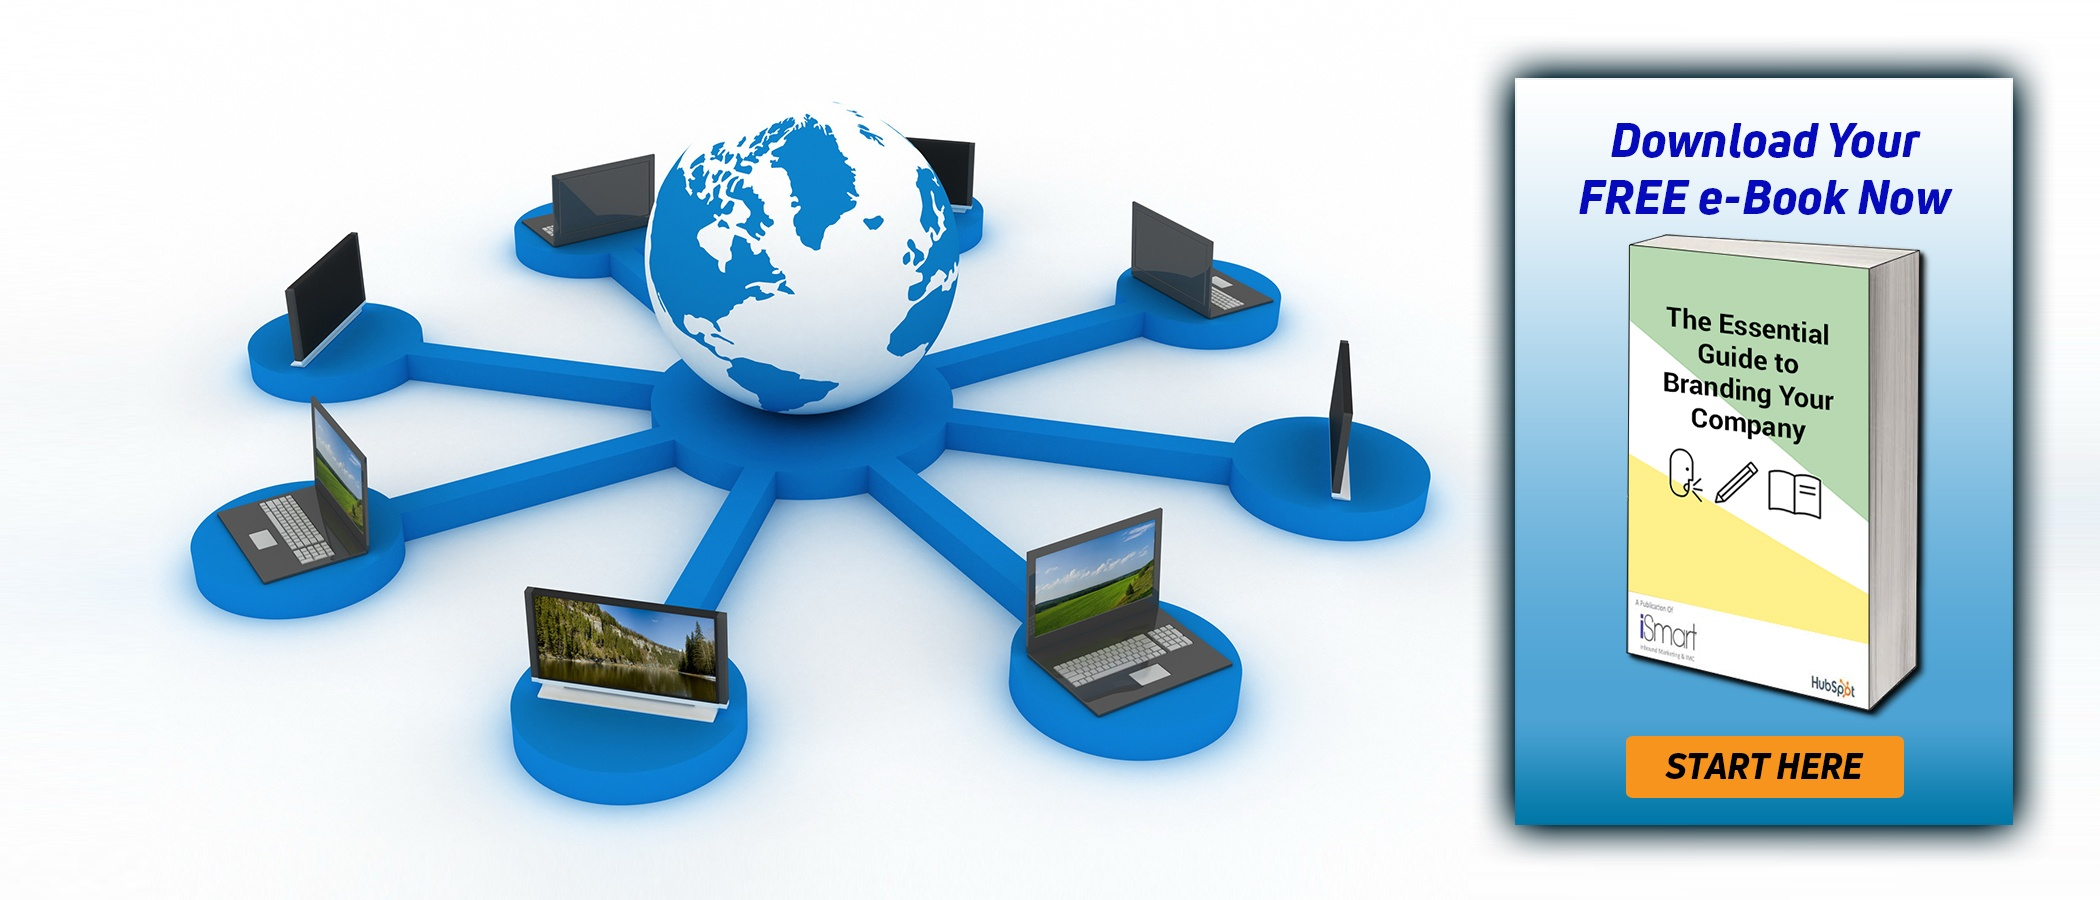 Business Databases for Singapore and Asia